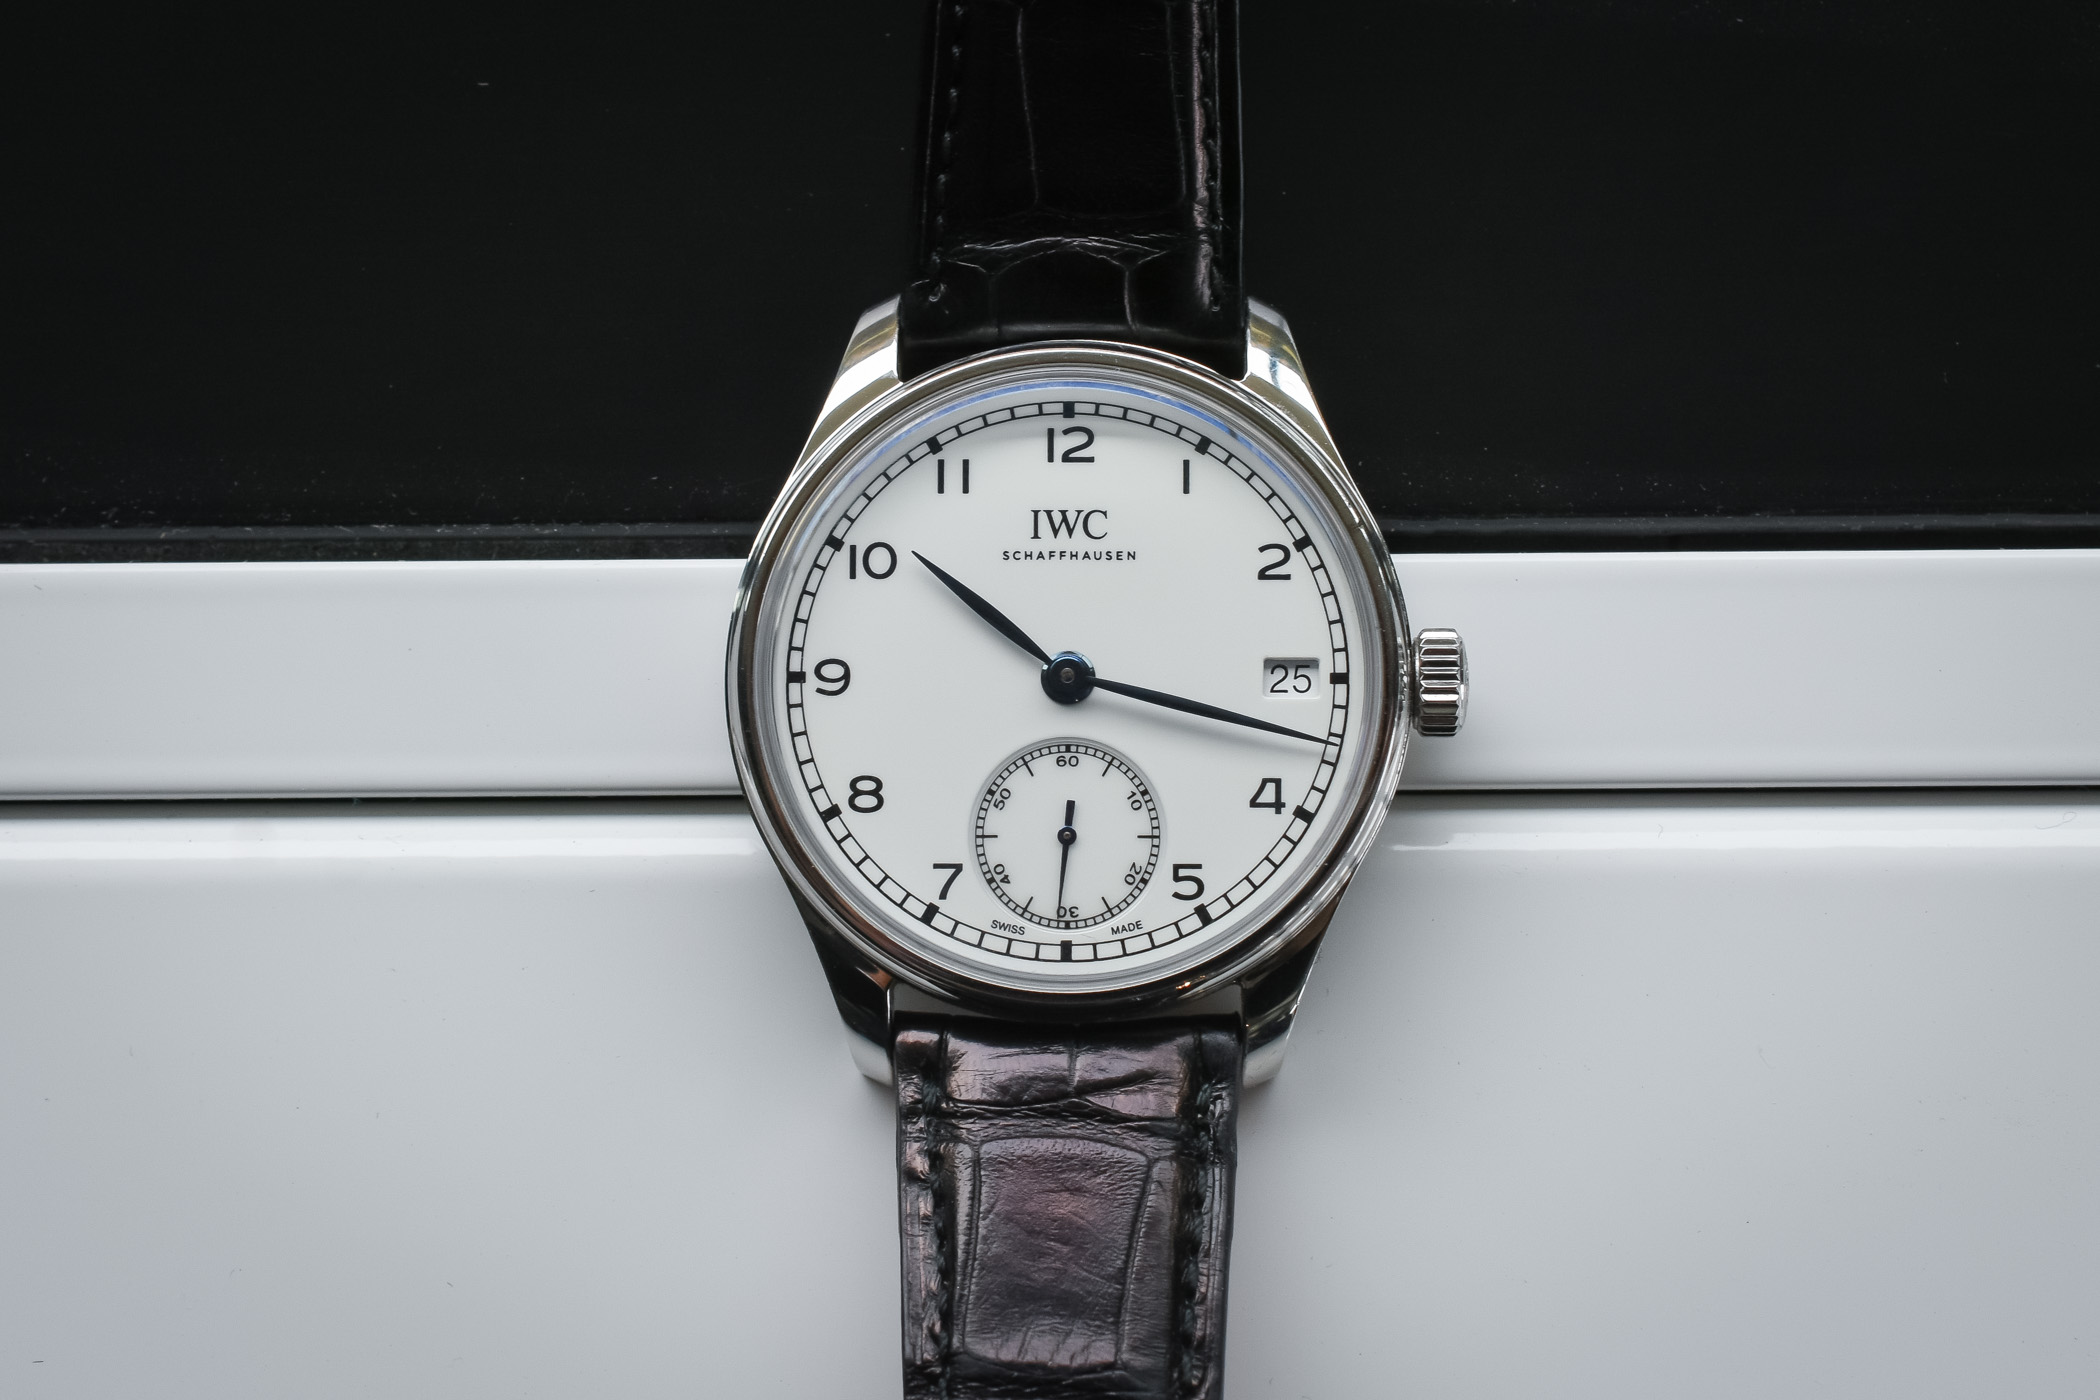 IWC Portugieser Hand-Wound Eight Days Edition 150 Years Ref. 5102 - SIHH 2018